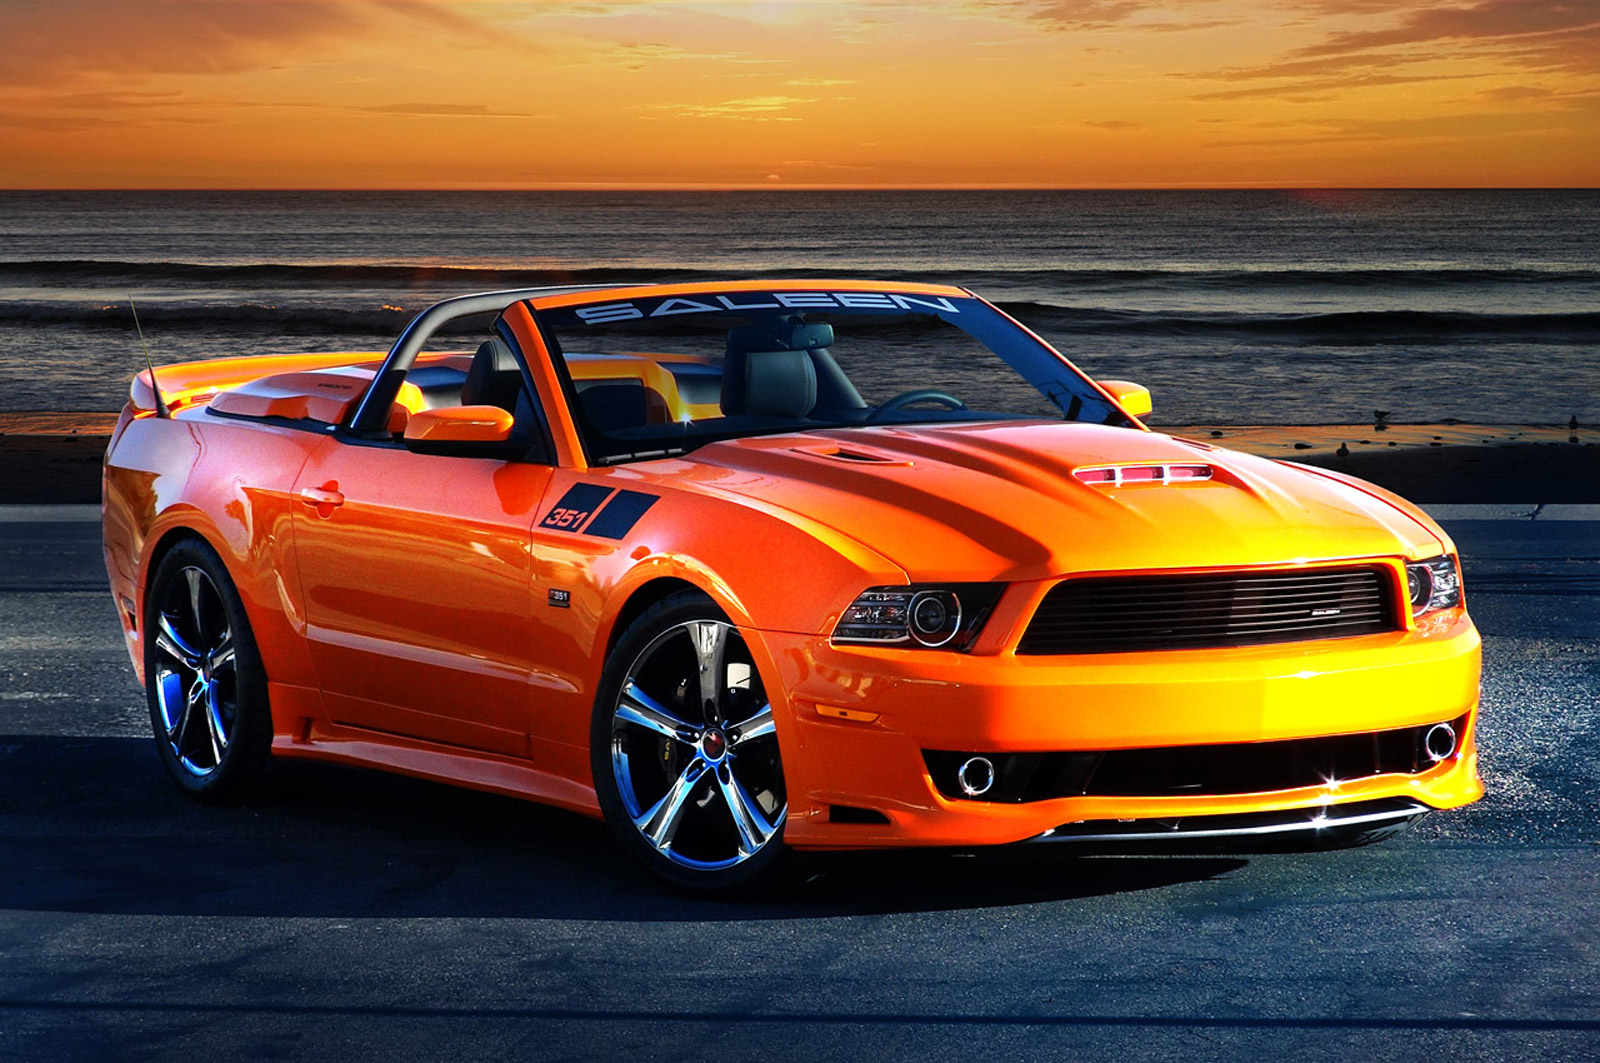 Saleens flagship 351 mustang enters production